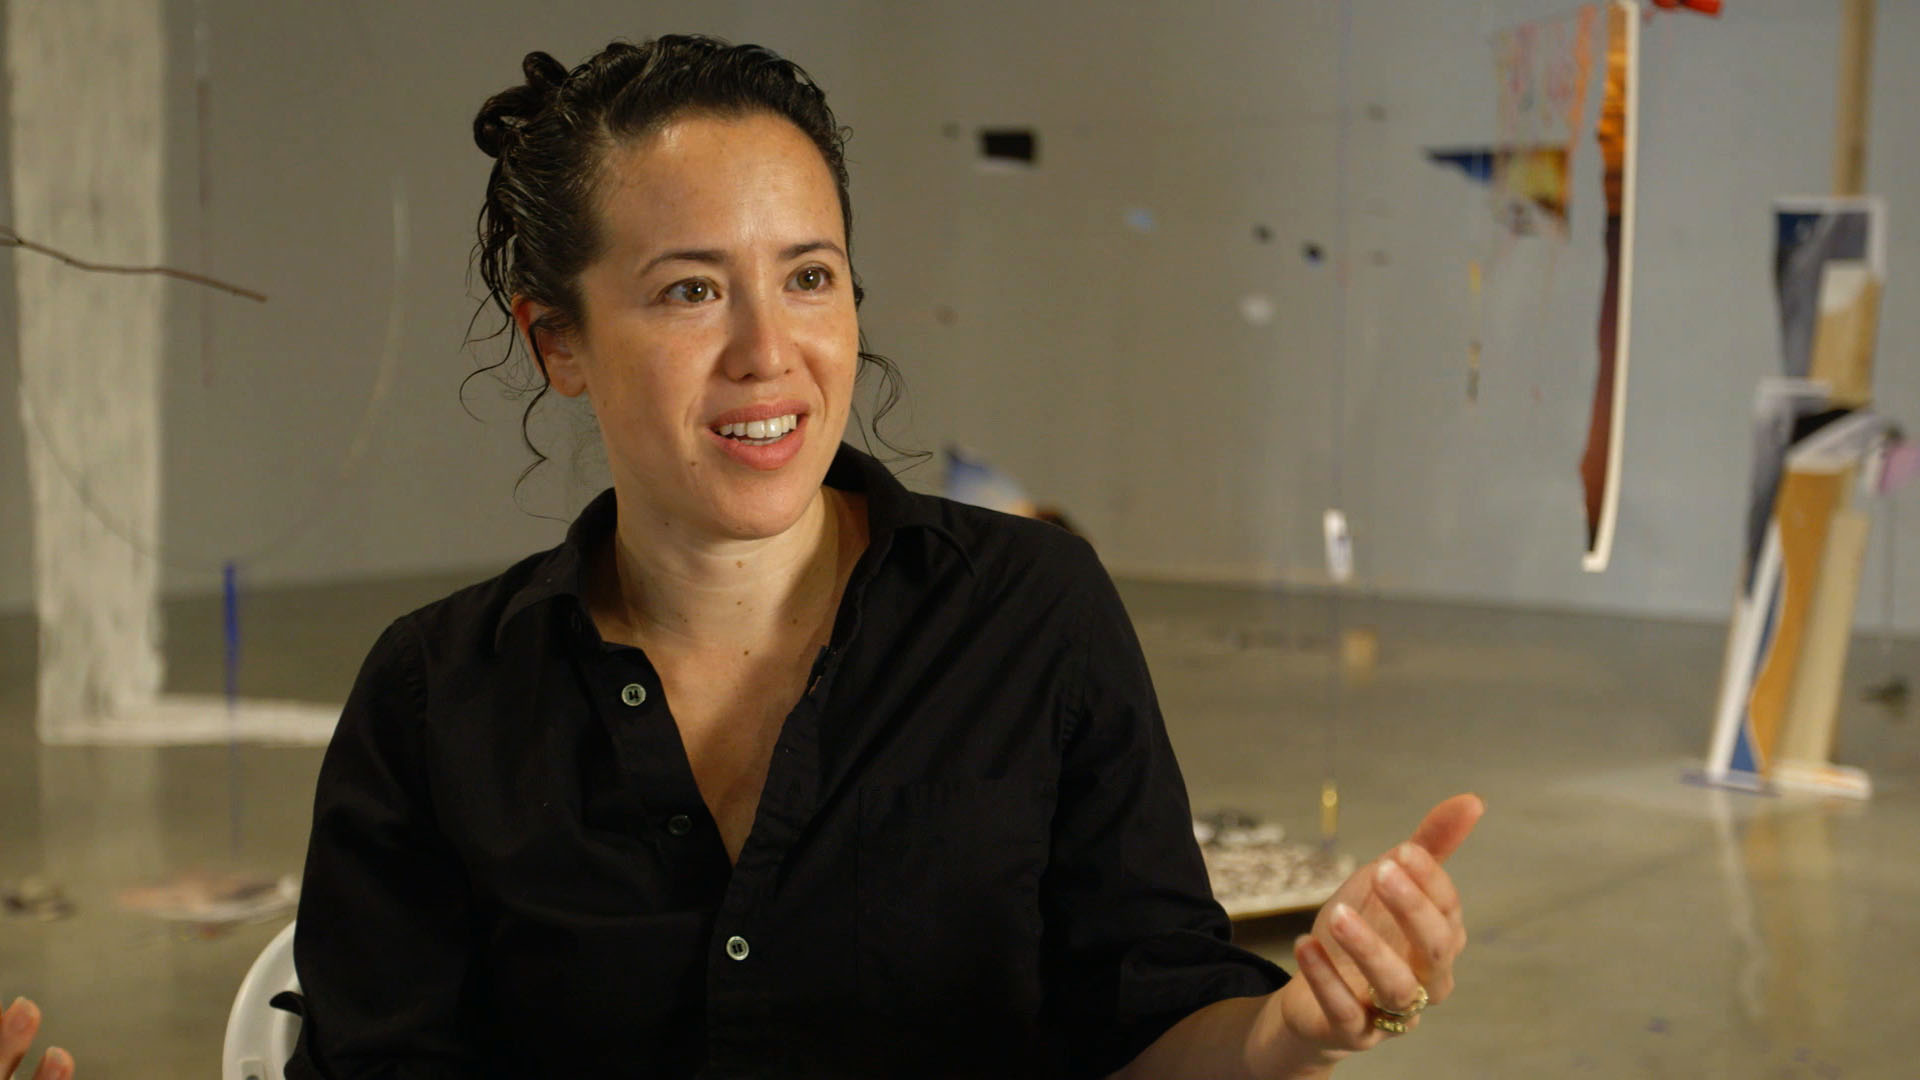 'We Have So Much Illusion': Watch Artist Sarah Sze Blend the Tactility of Organic Materials With the Intangibility of Images